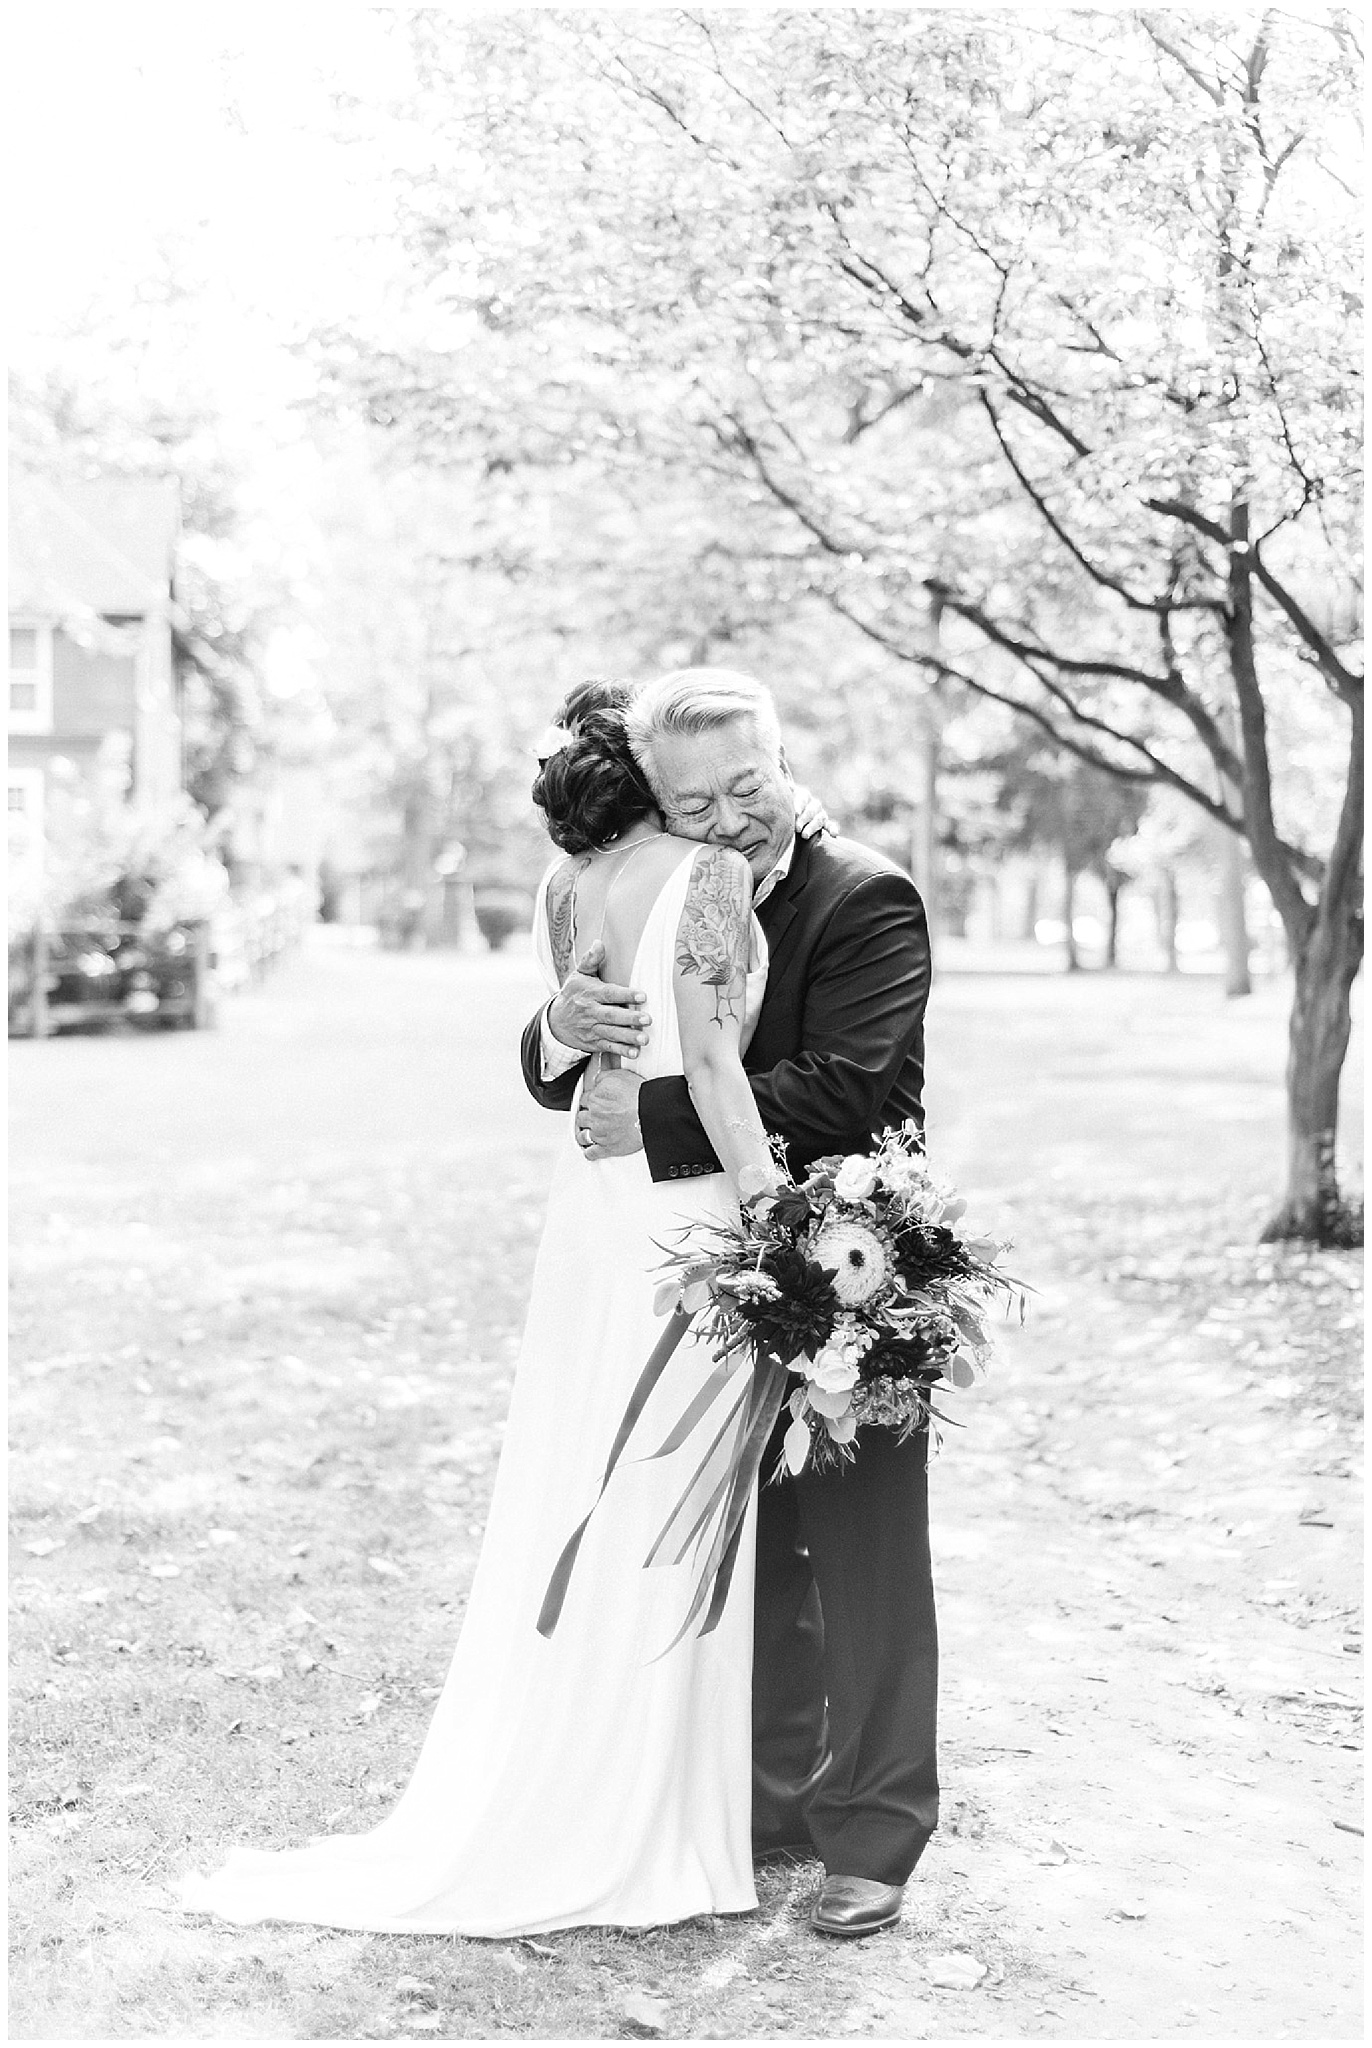 Bride's first look with her Dad | Chic, laid back wedding at Victoria Park Pavilion photographed by Jenn Kavanagh Photography